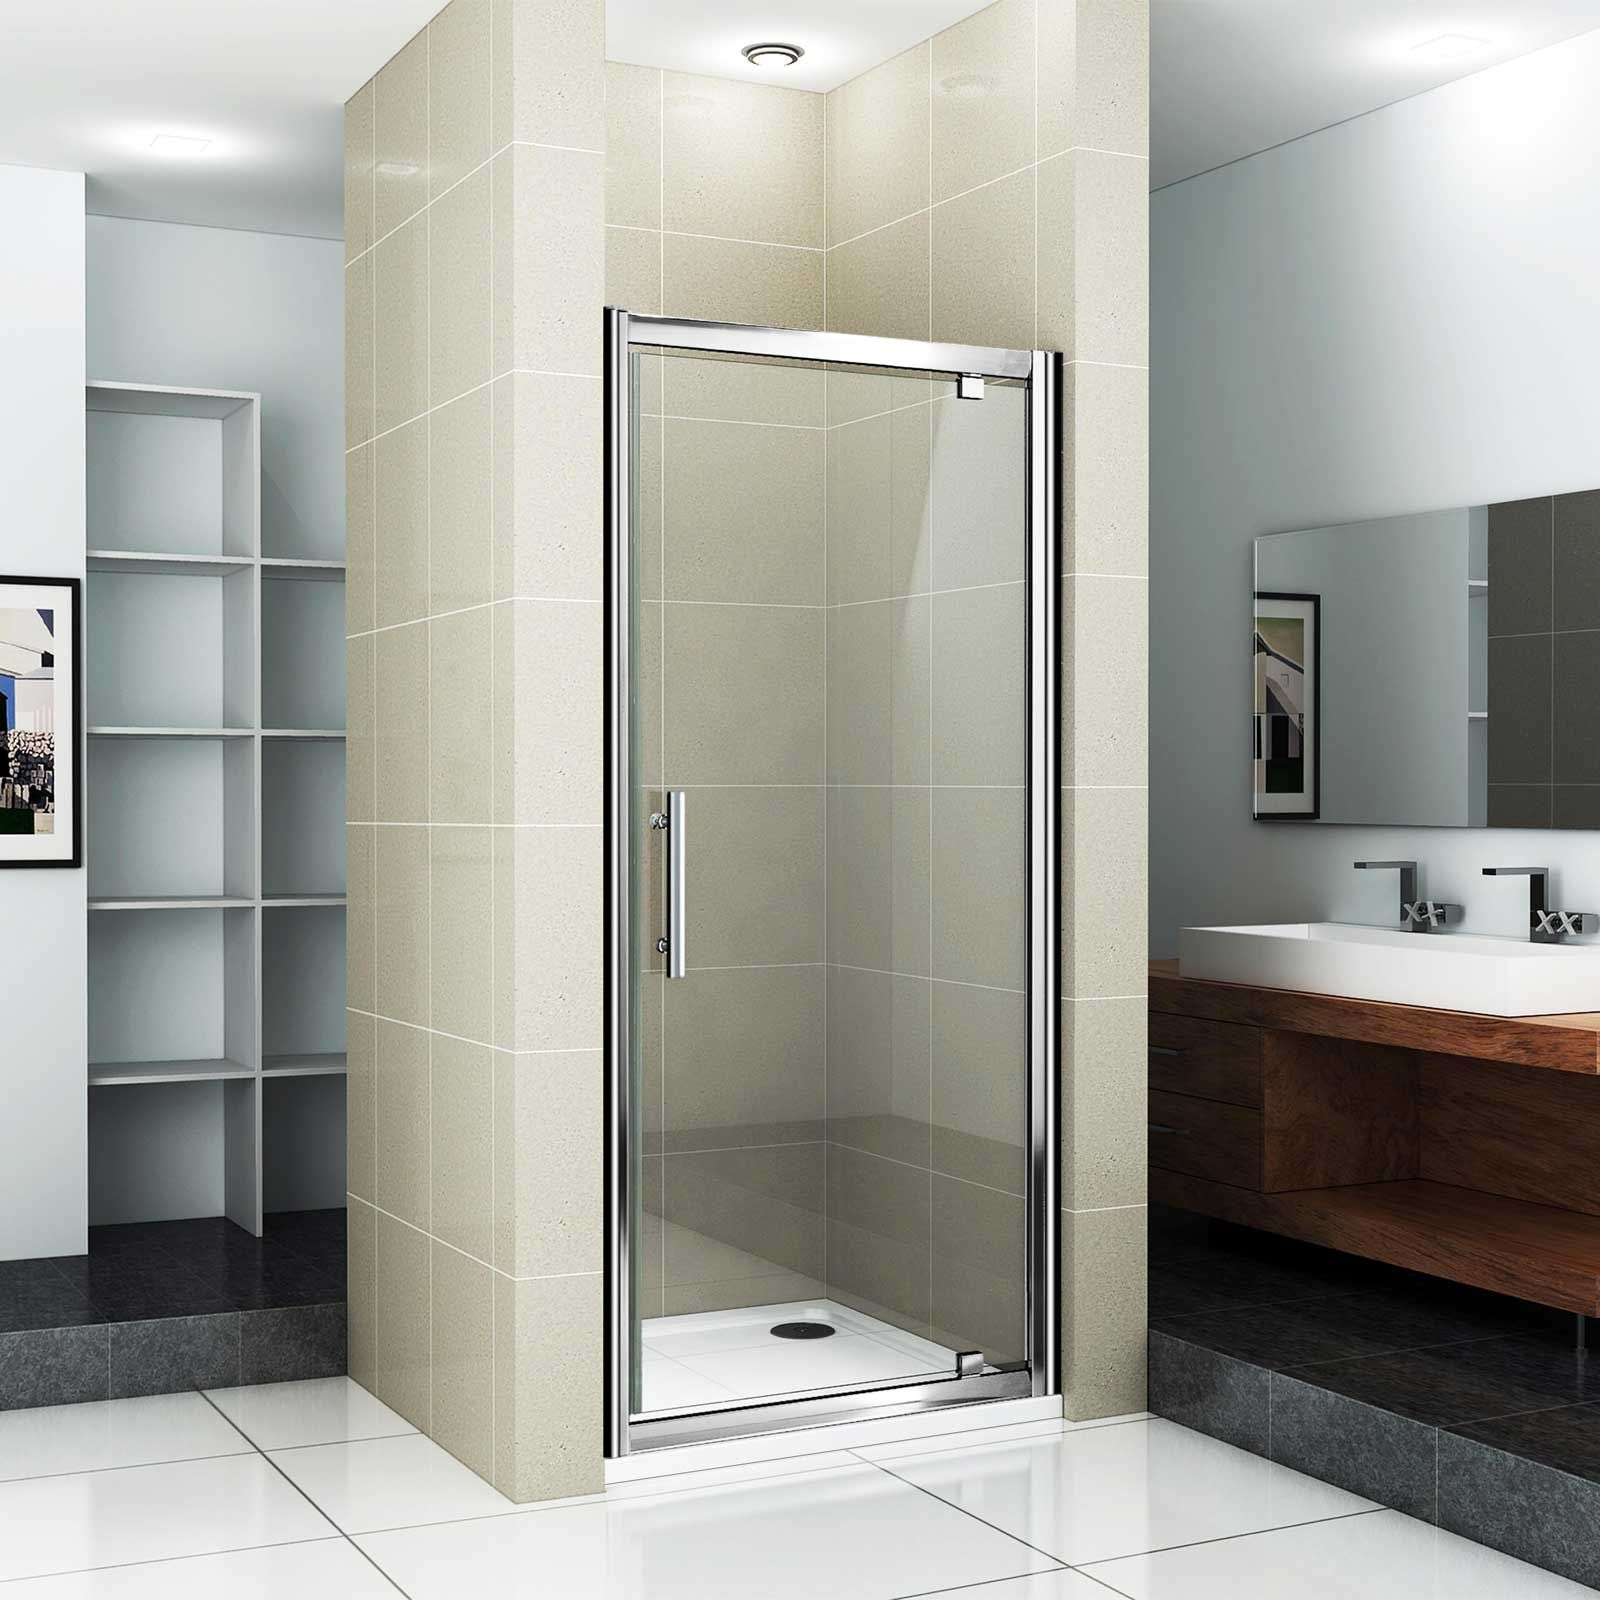 replace shower stall doors with curtain | shower | Pinterest | Doors ...